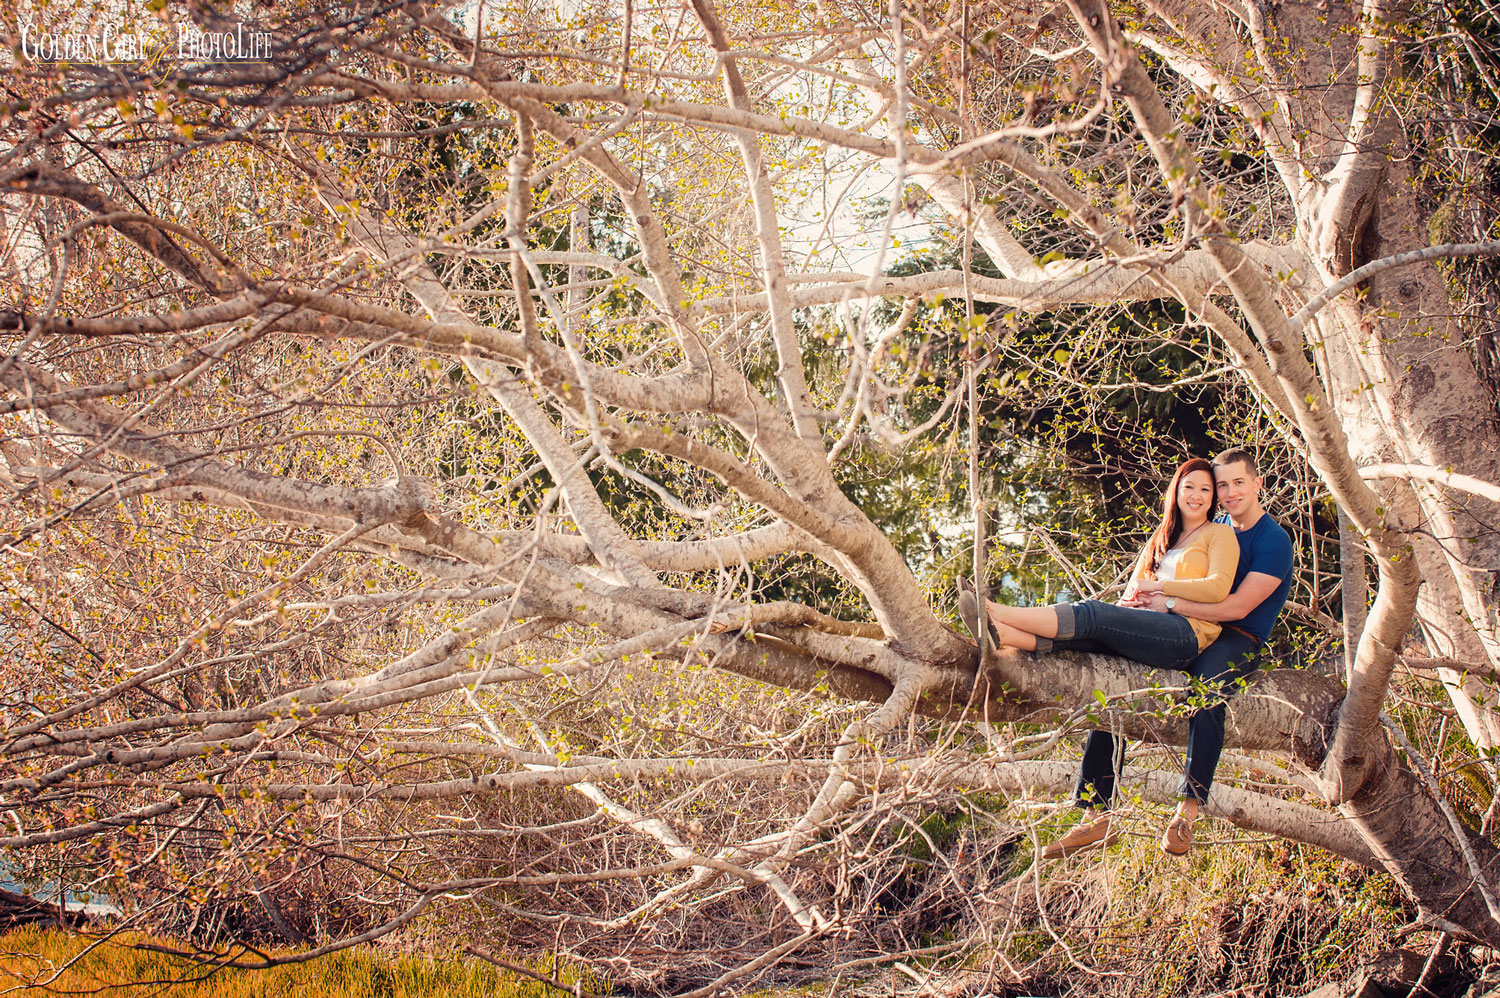 seattle--wedding-photographer-best-of-king5-engagement-session-in-tree-beach.jpg